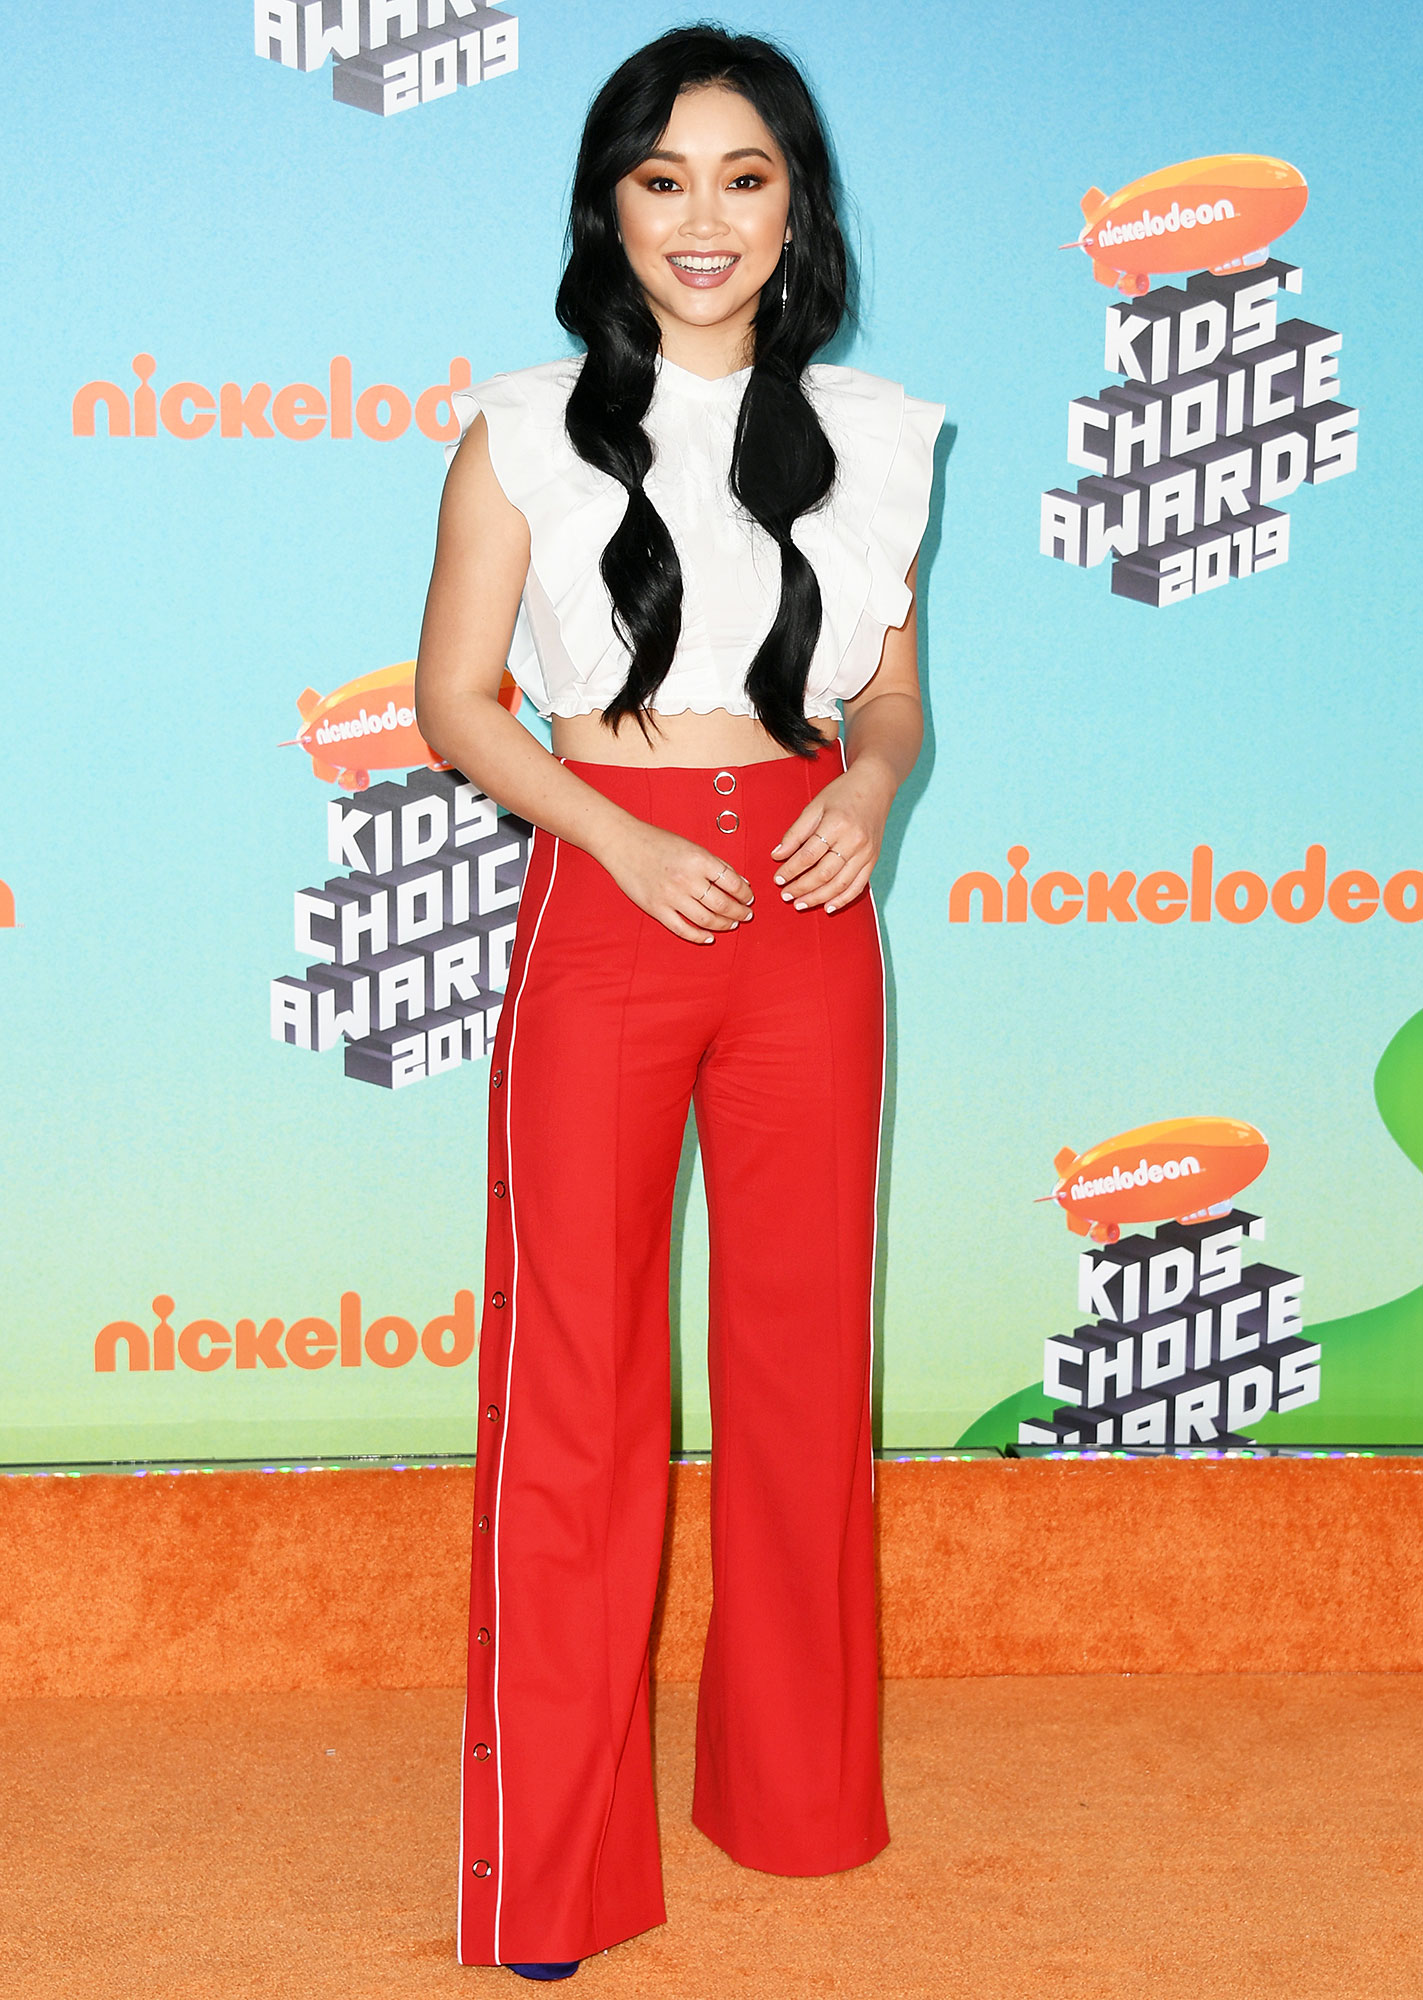 Nickelodeon Kids Choice Awards 2019 Lana Condor - Making an argument for red carpet track pants, the To All the Boys I Loved star wore red Jonathan Simkhai snap wool trousers with a cropped Giamba blouse